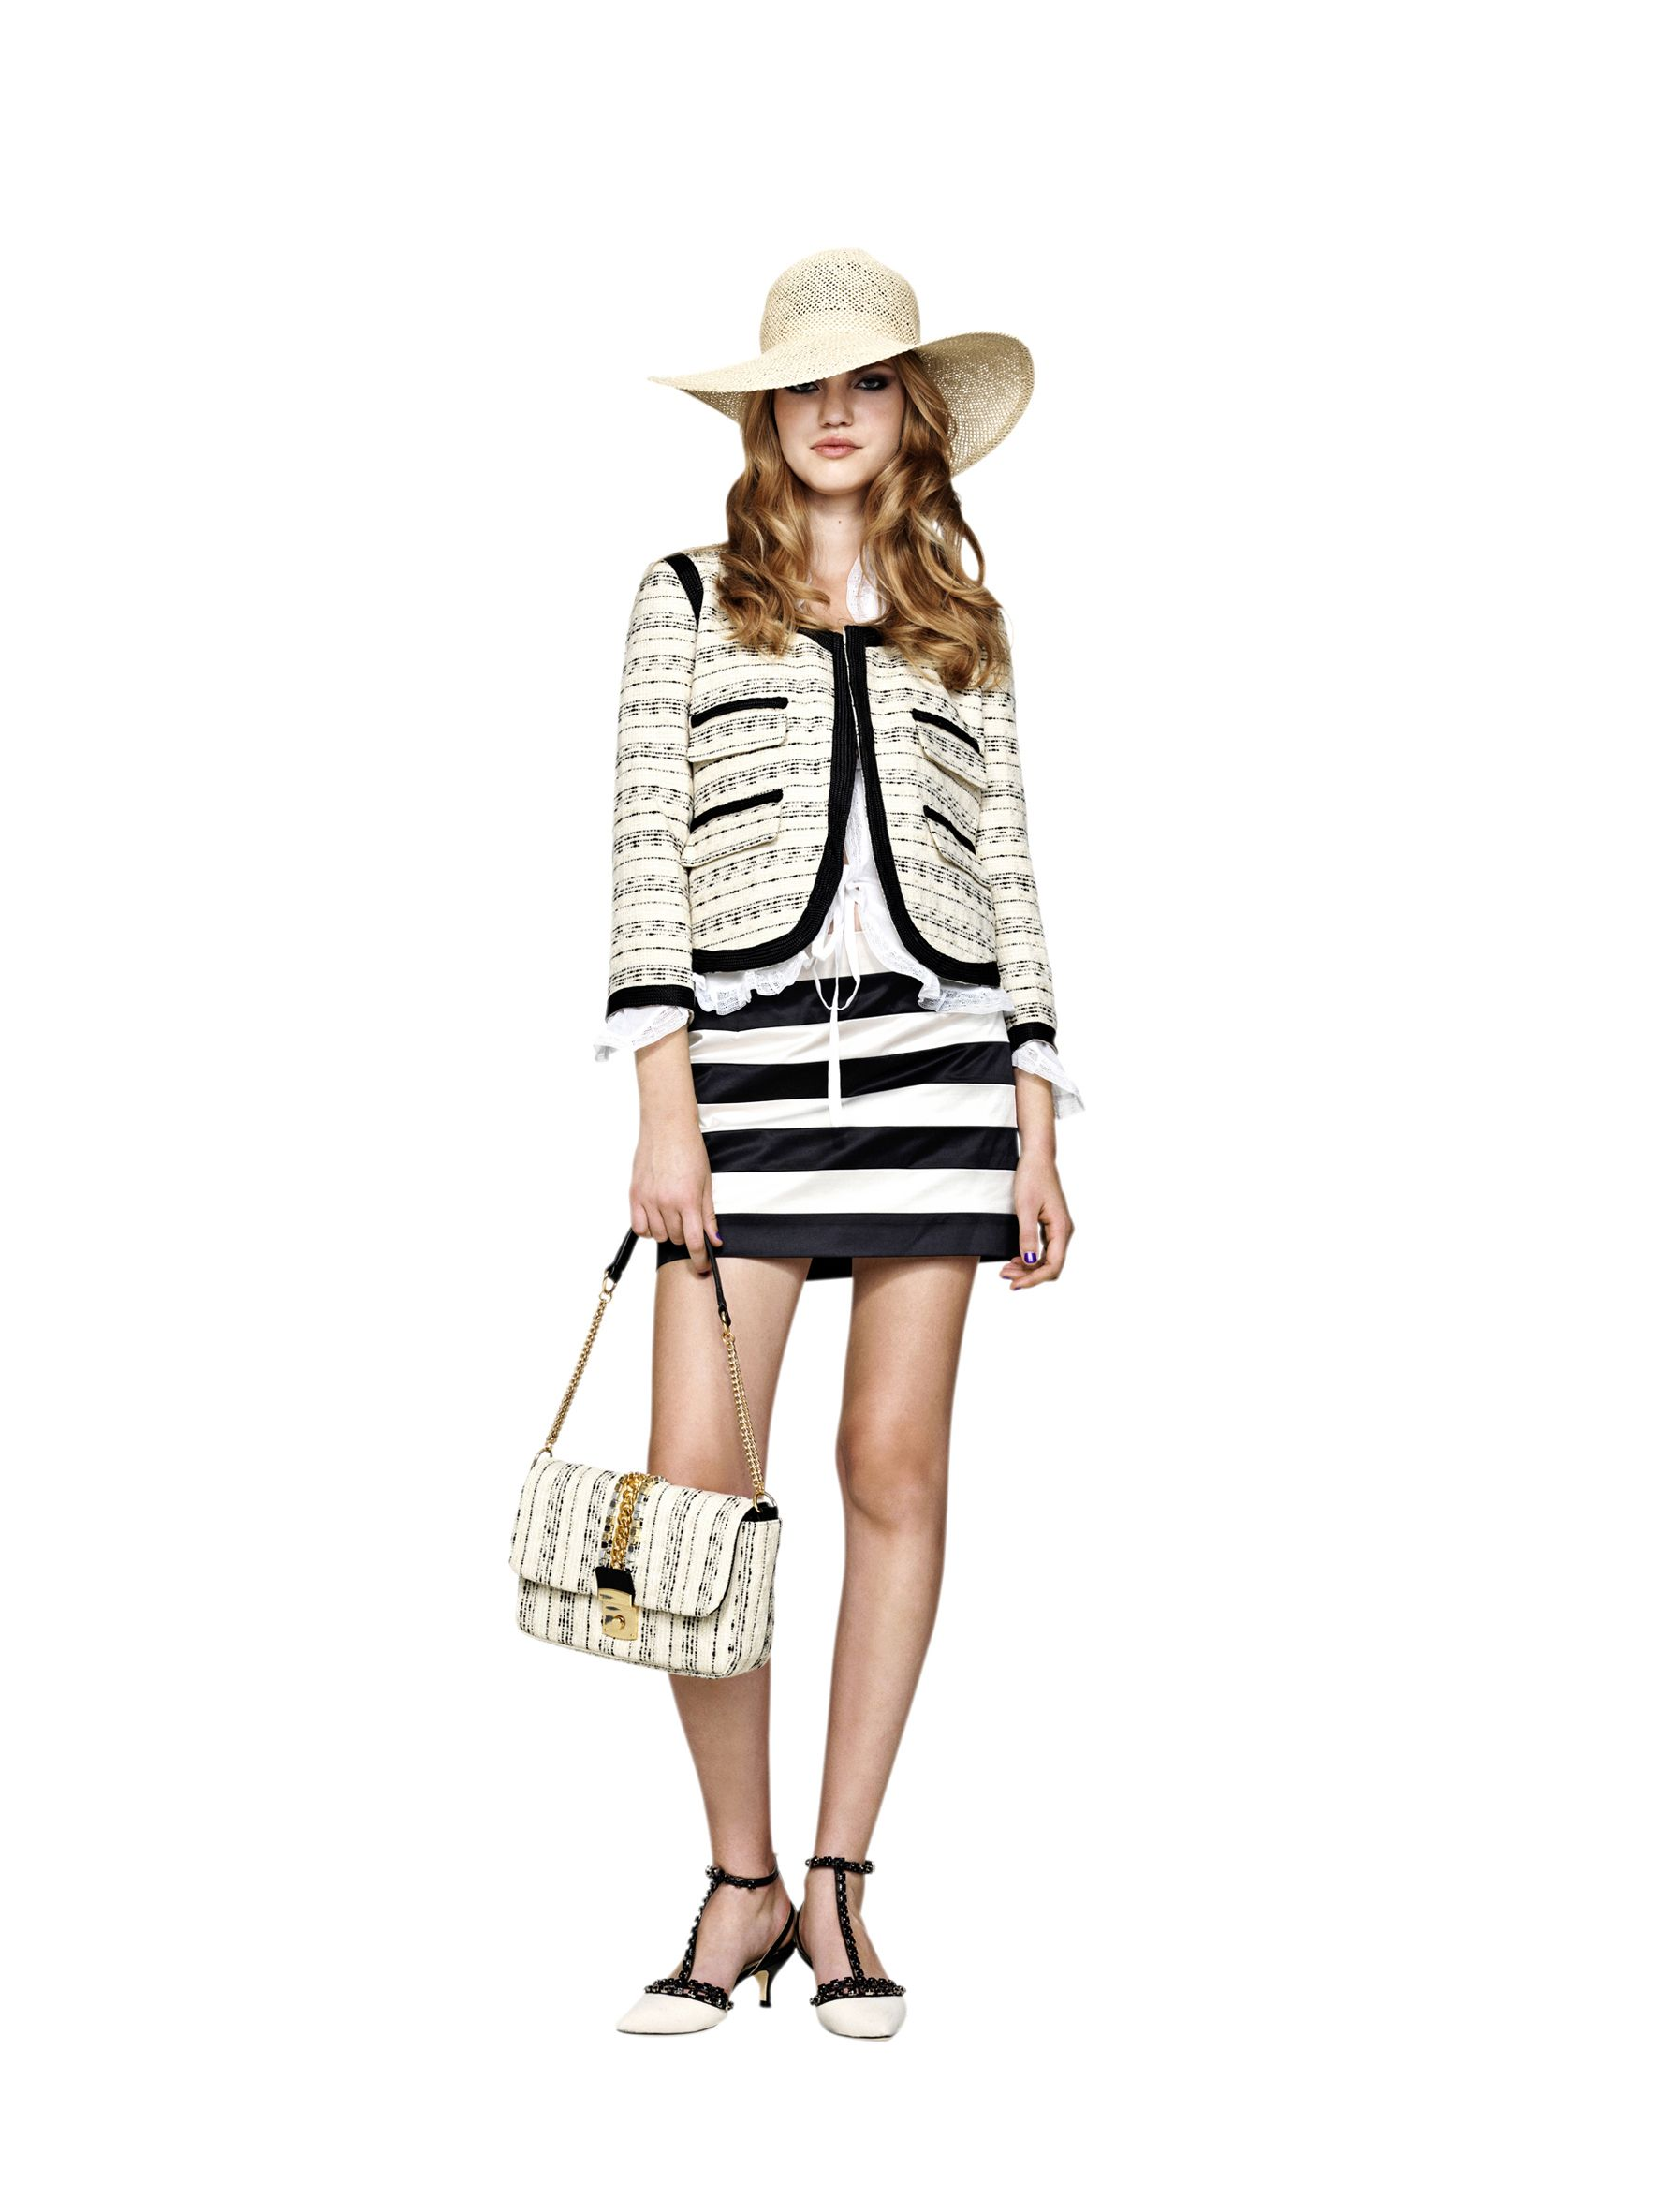 Love the jacket and skirt from Malene Birger